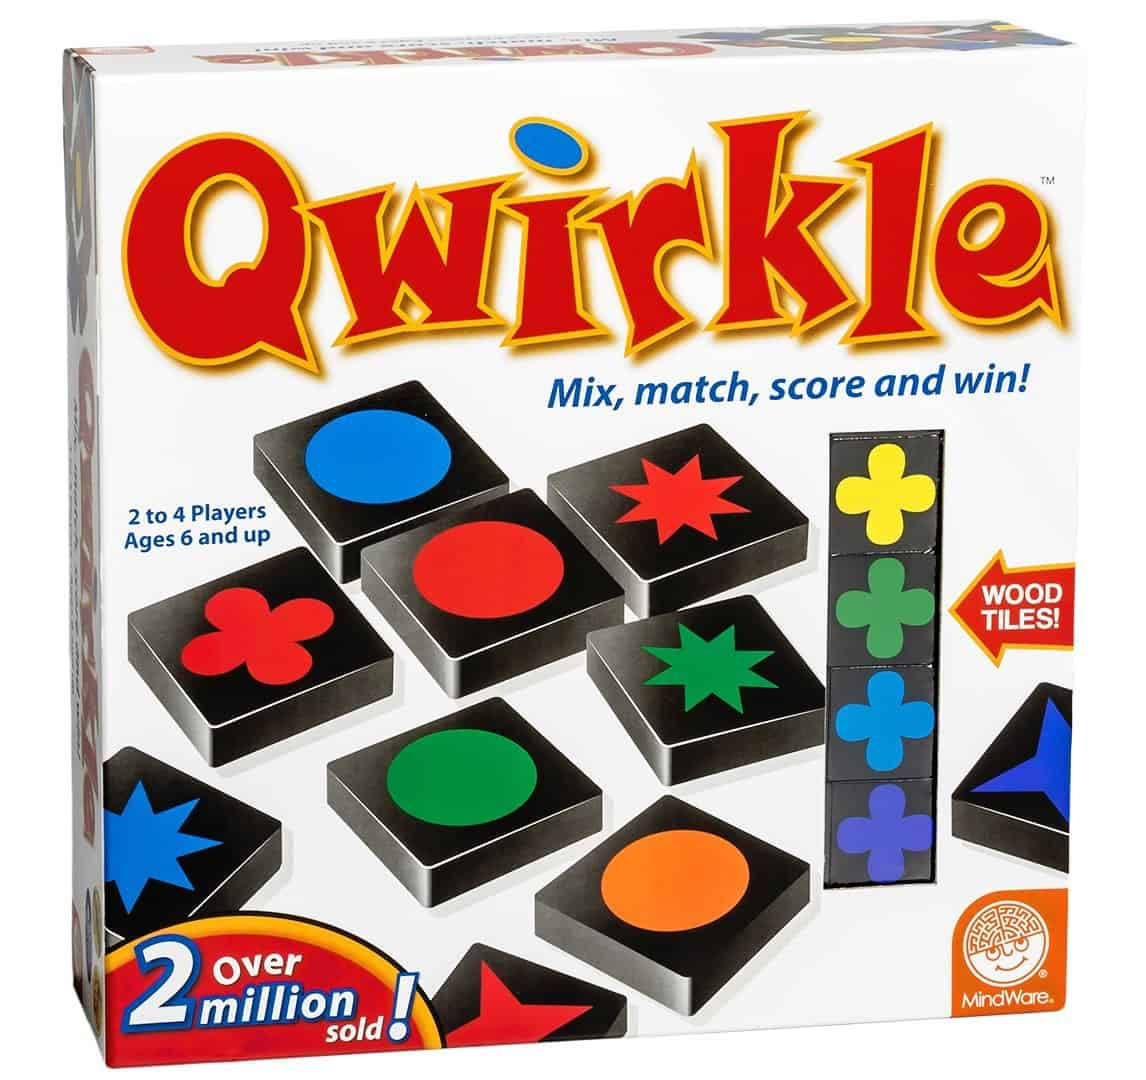 16 Family Board Games Your Kids Will Beg To Play